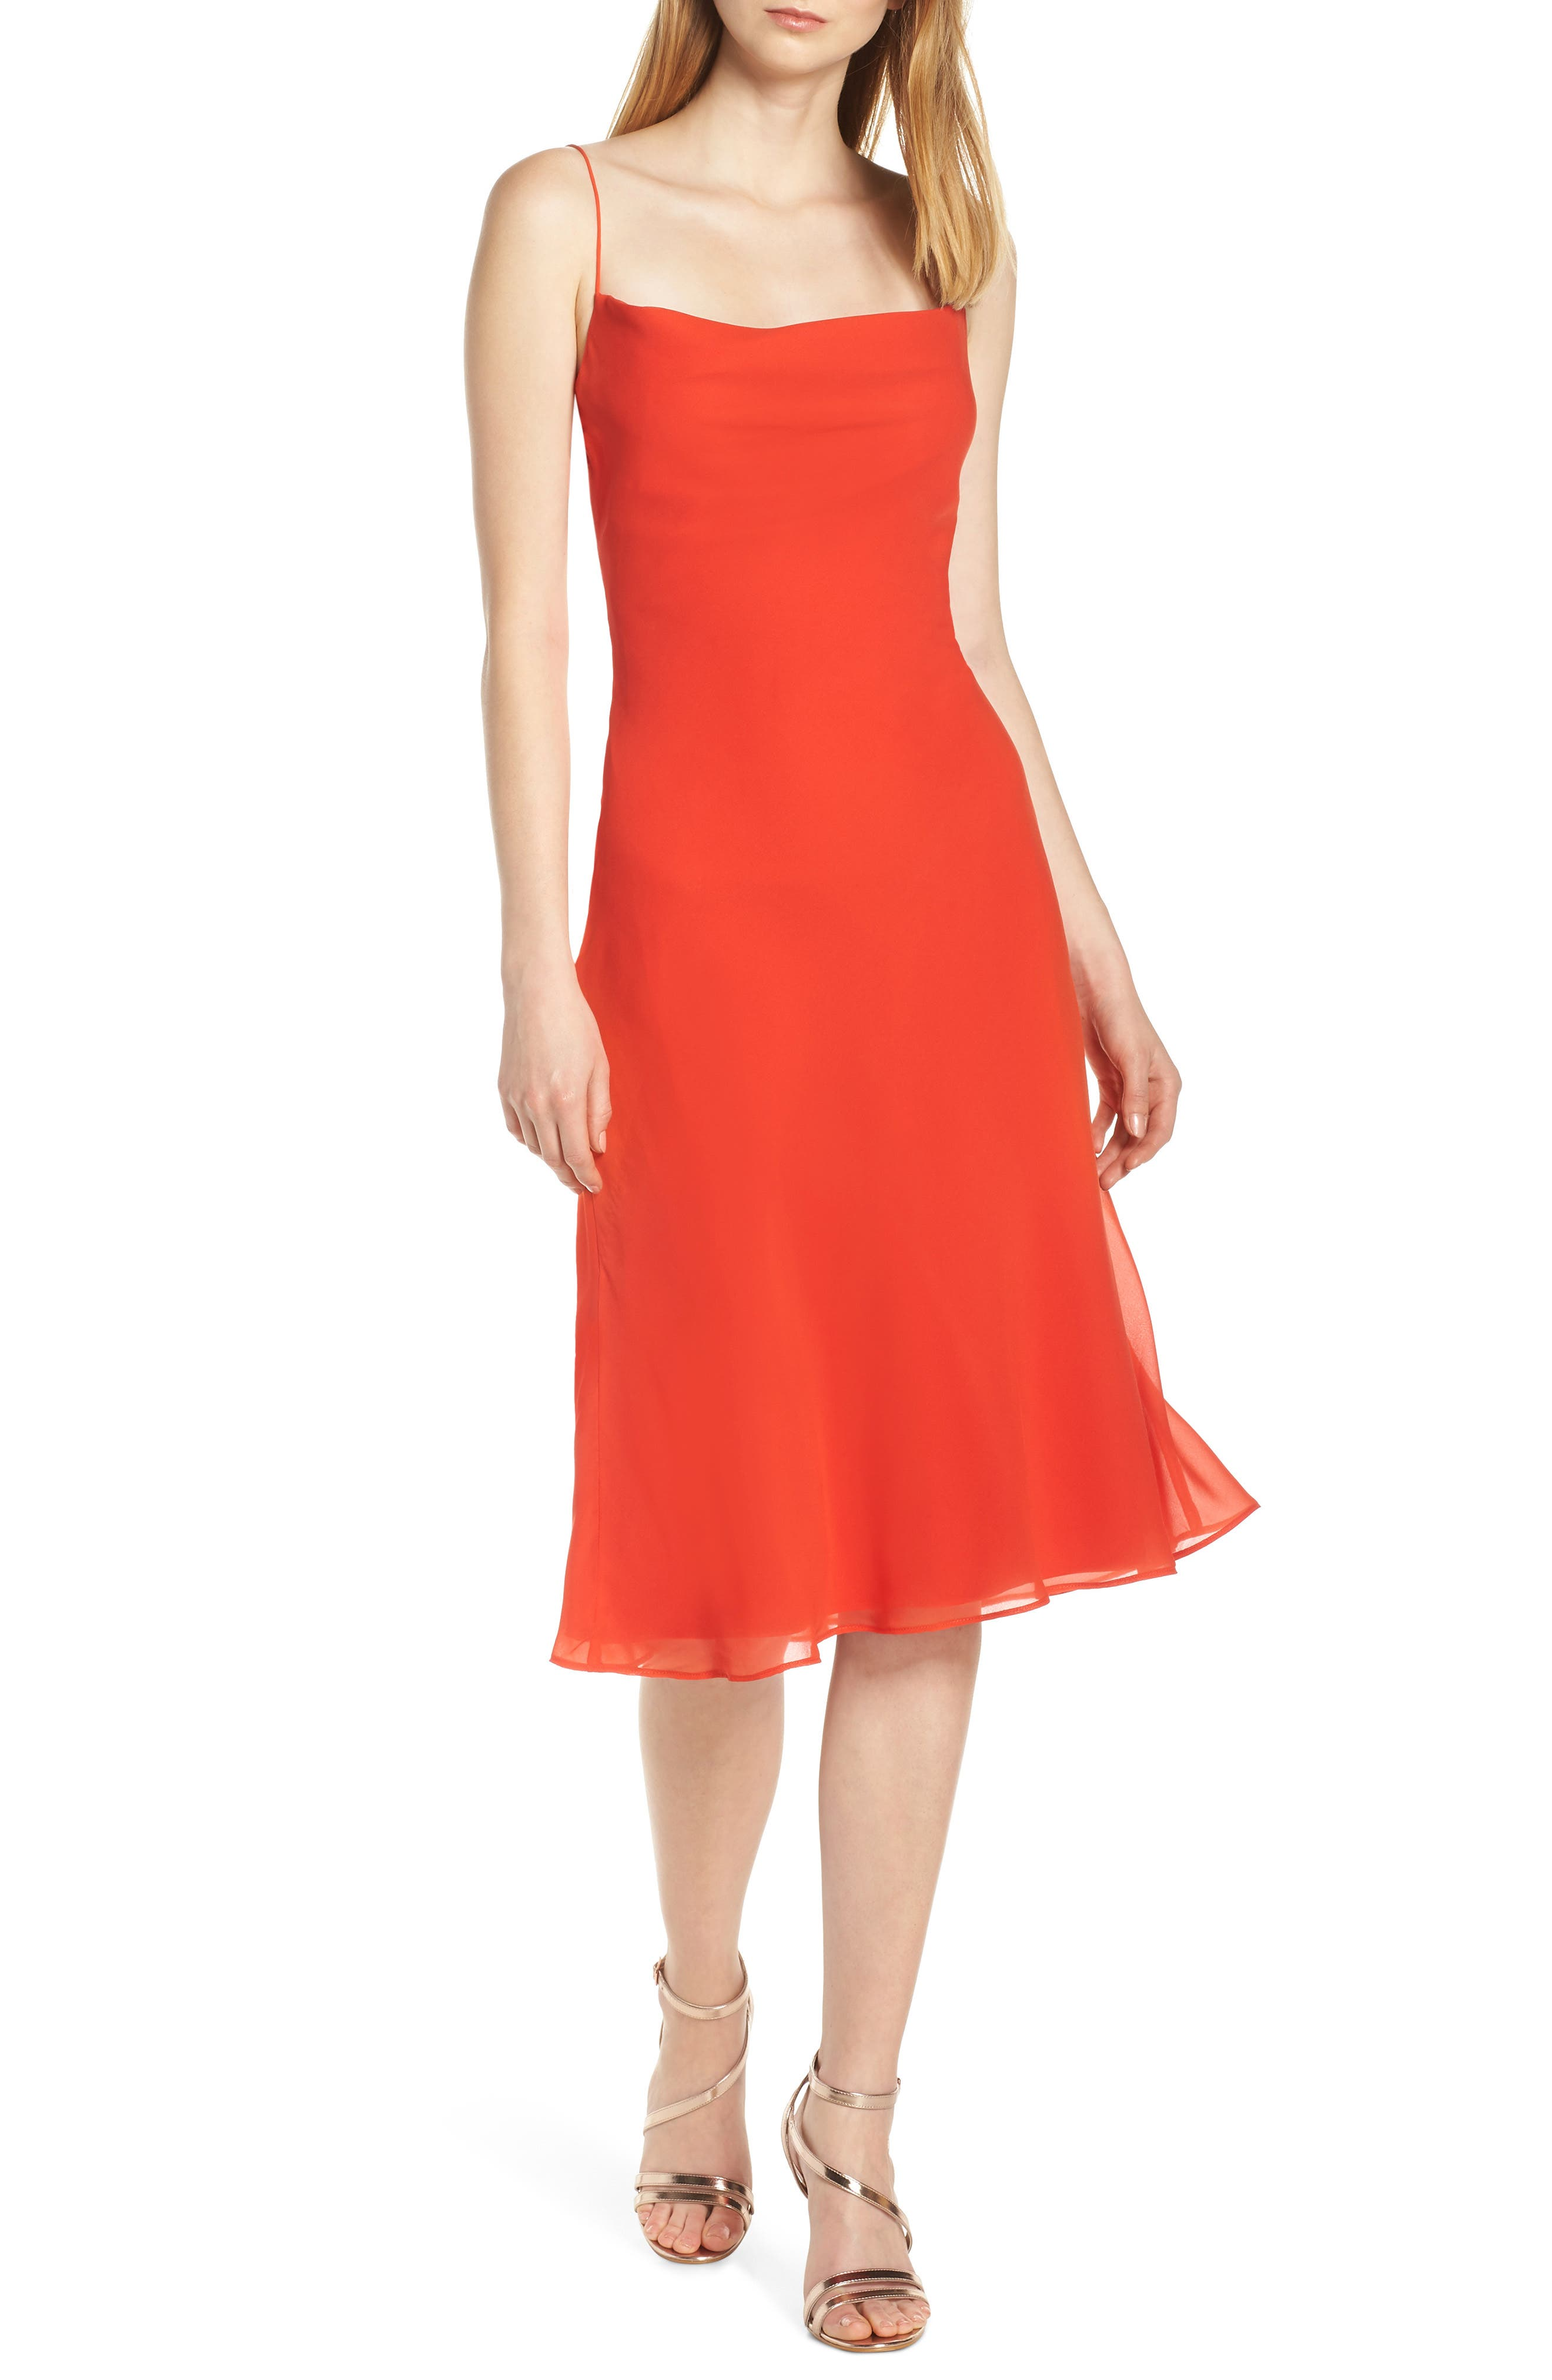 Finders Keepers Nostalgia Back Cutout Slipdress, Red